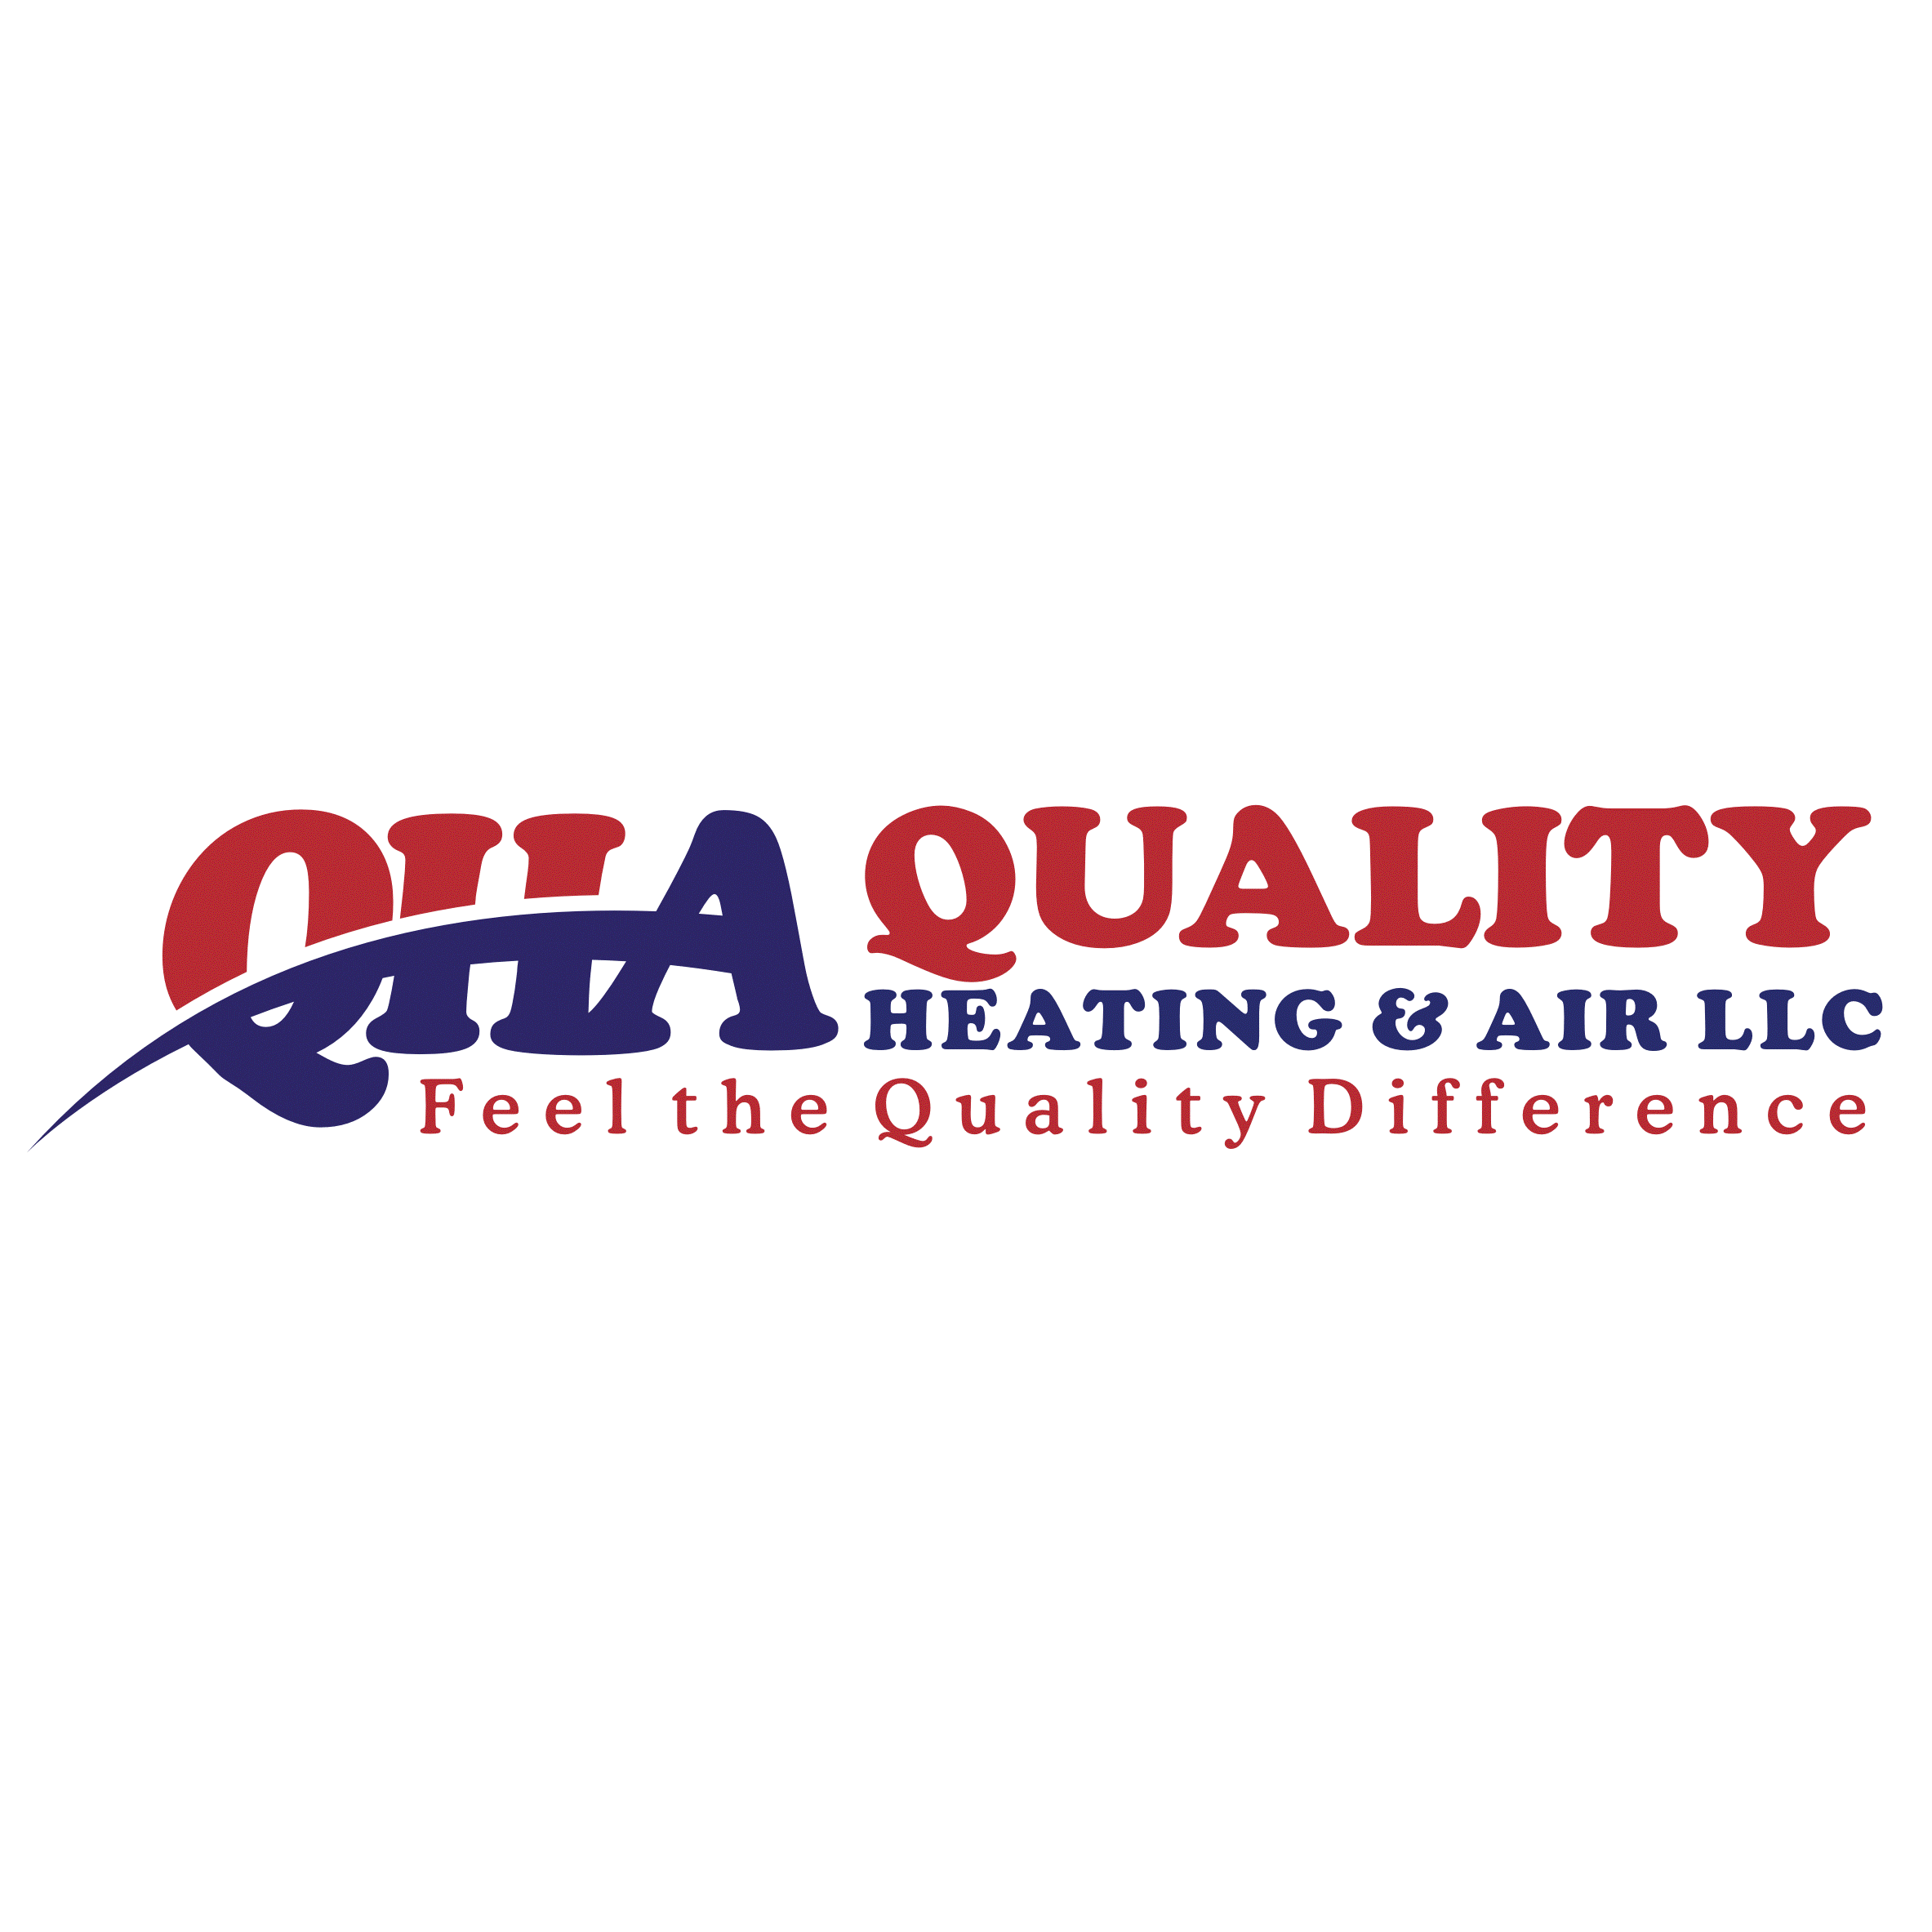 Quality Heating & Air LLC